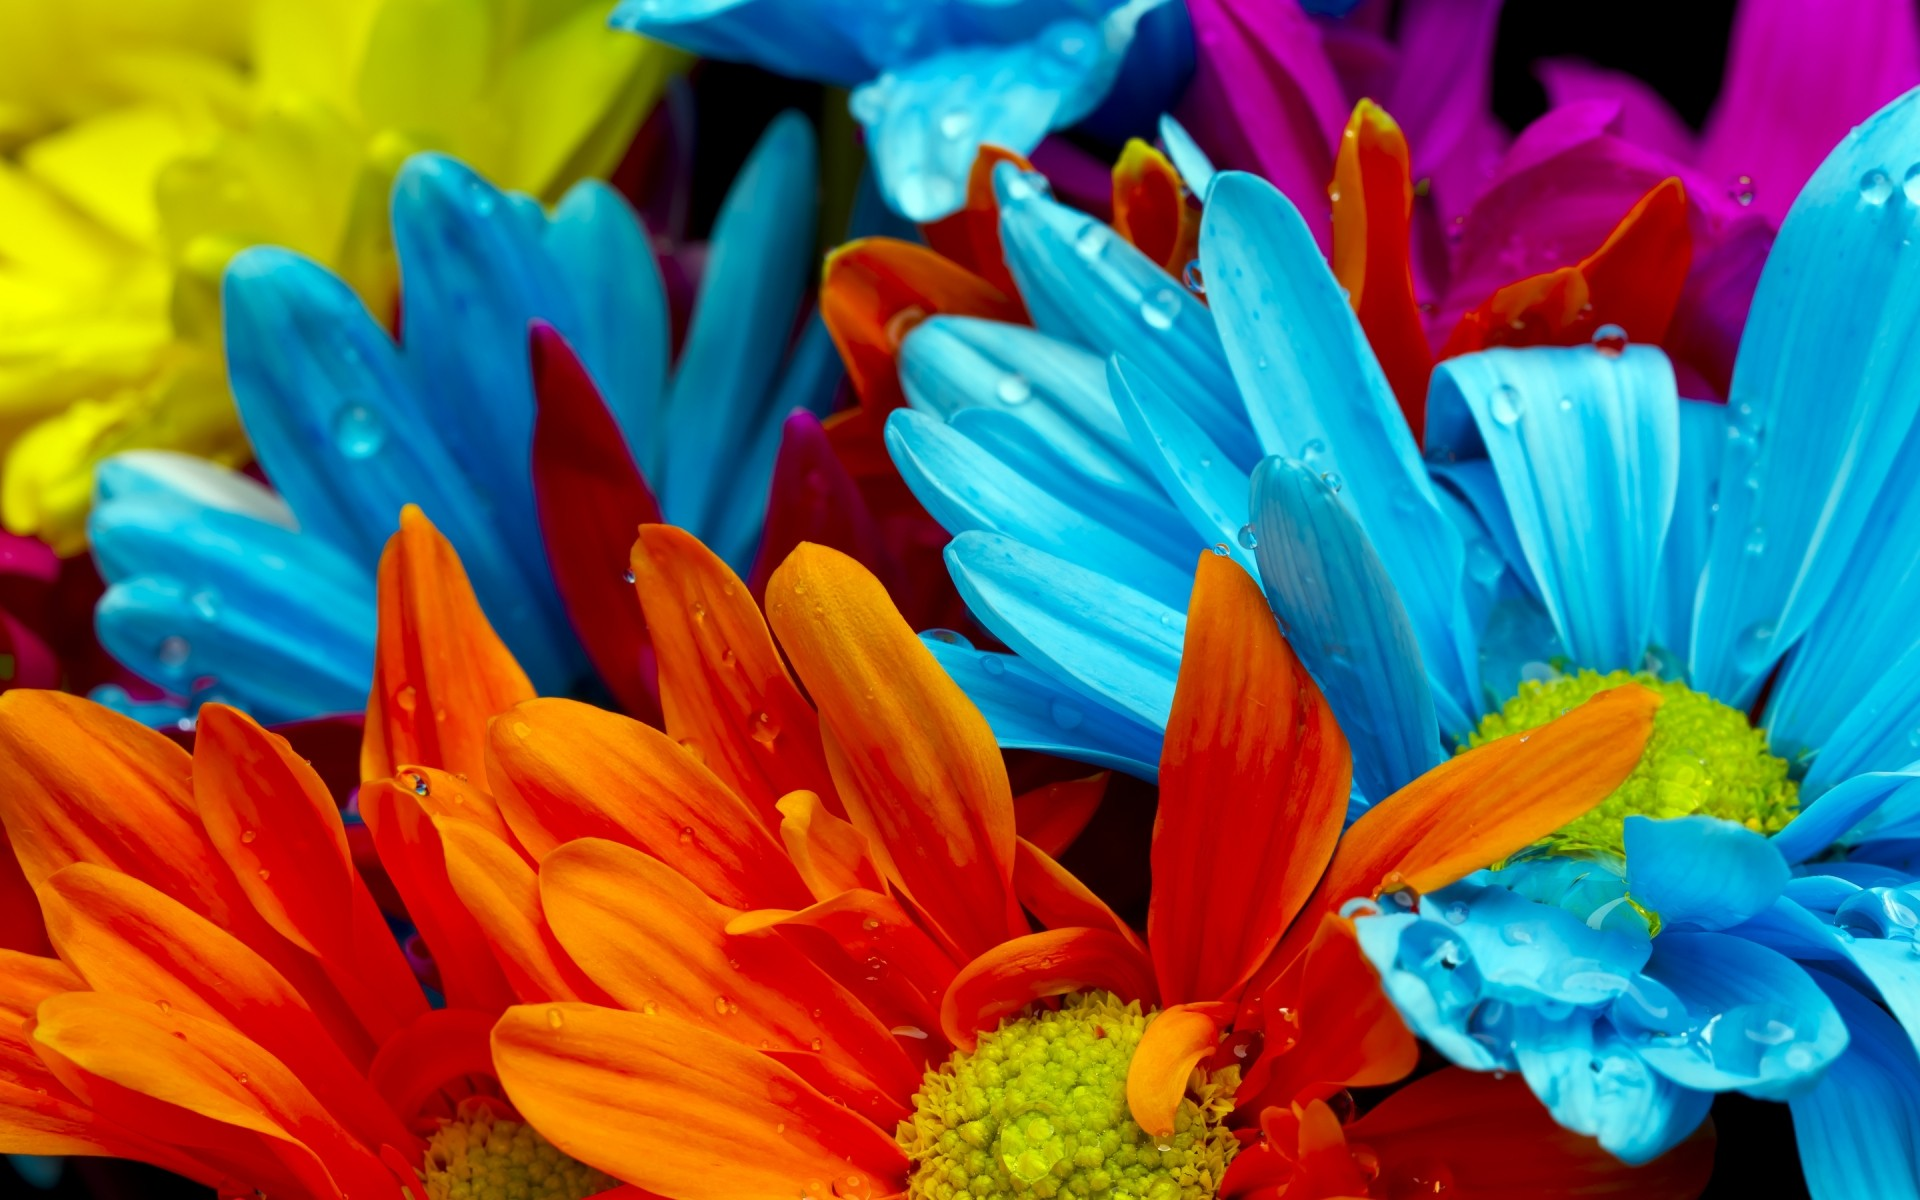 Amazing Flower Colors. Android wallpapers for free.